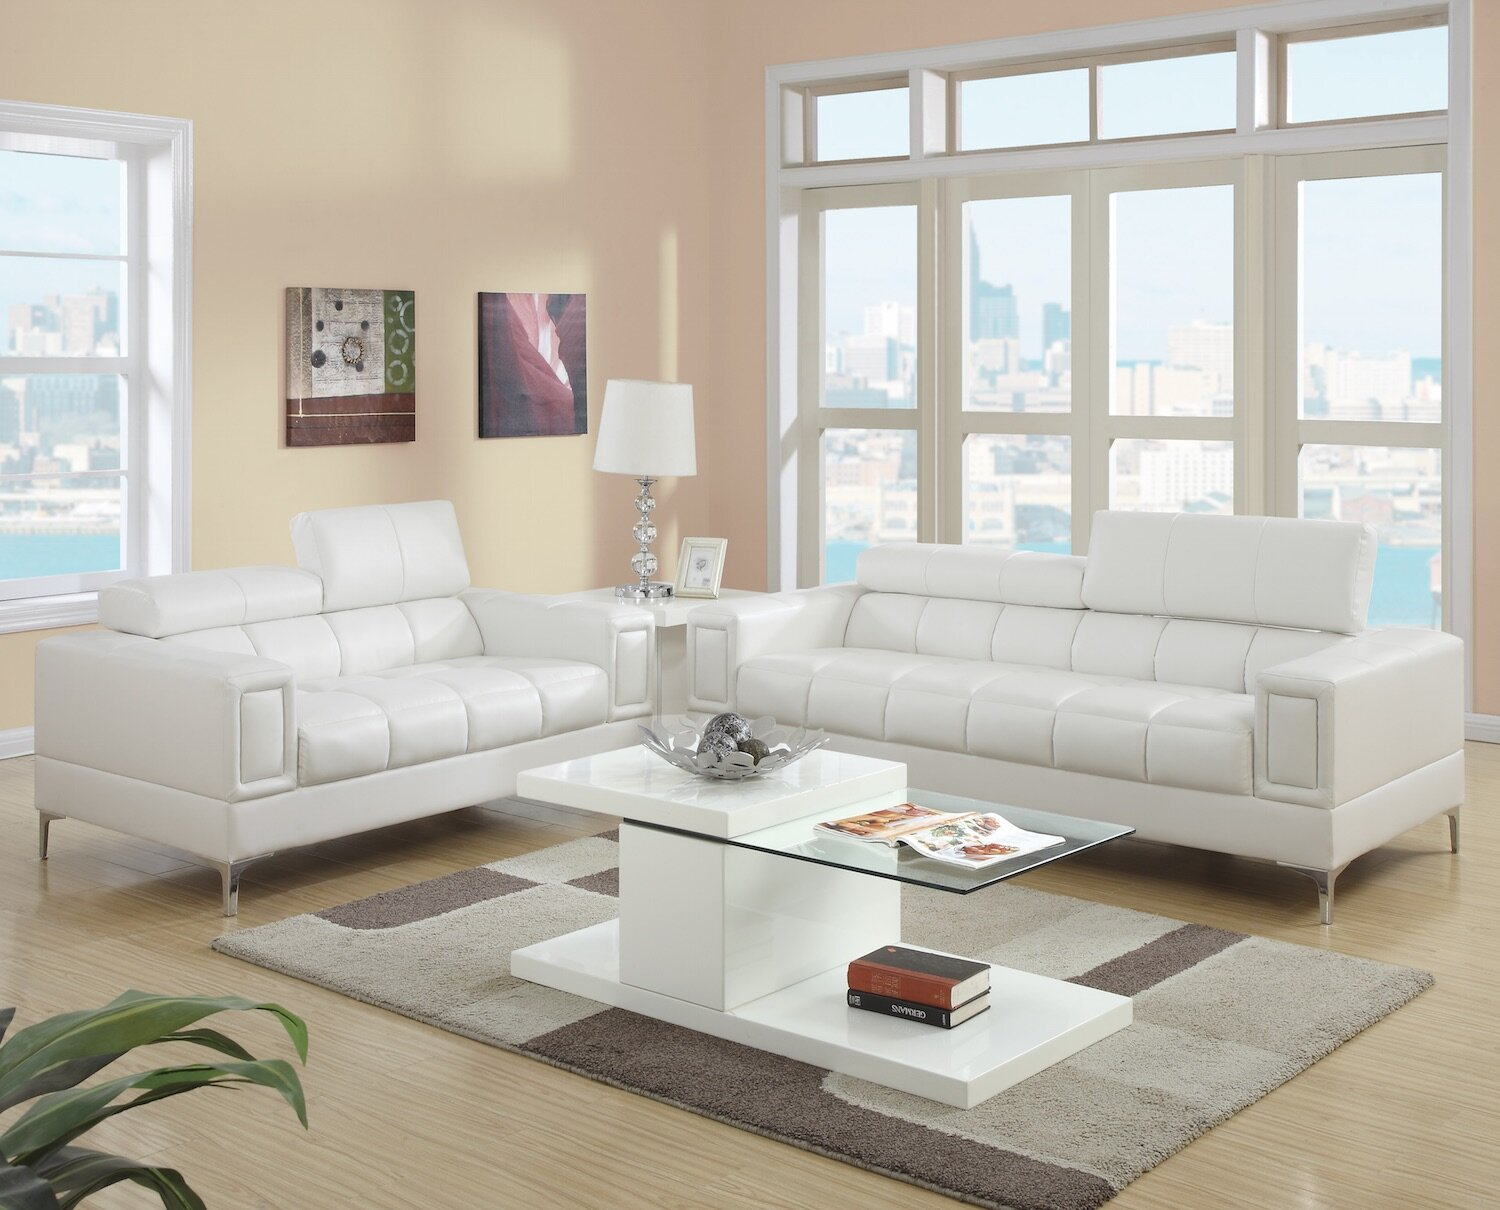 Infini Furnishings 2 Piece Living Room Set & Reviews | Wayfair